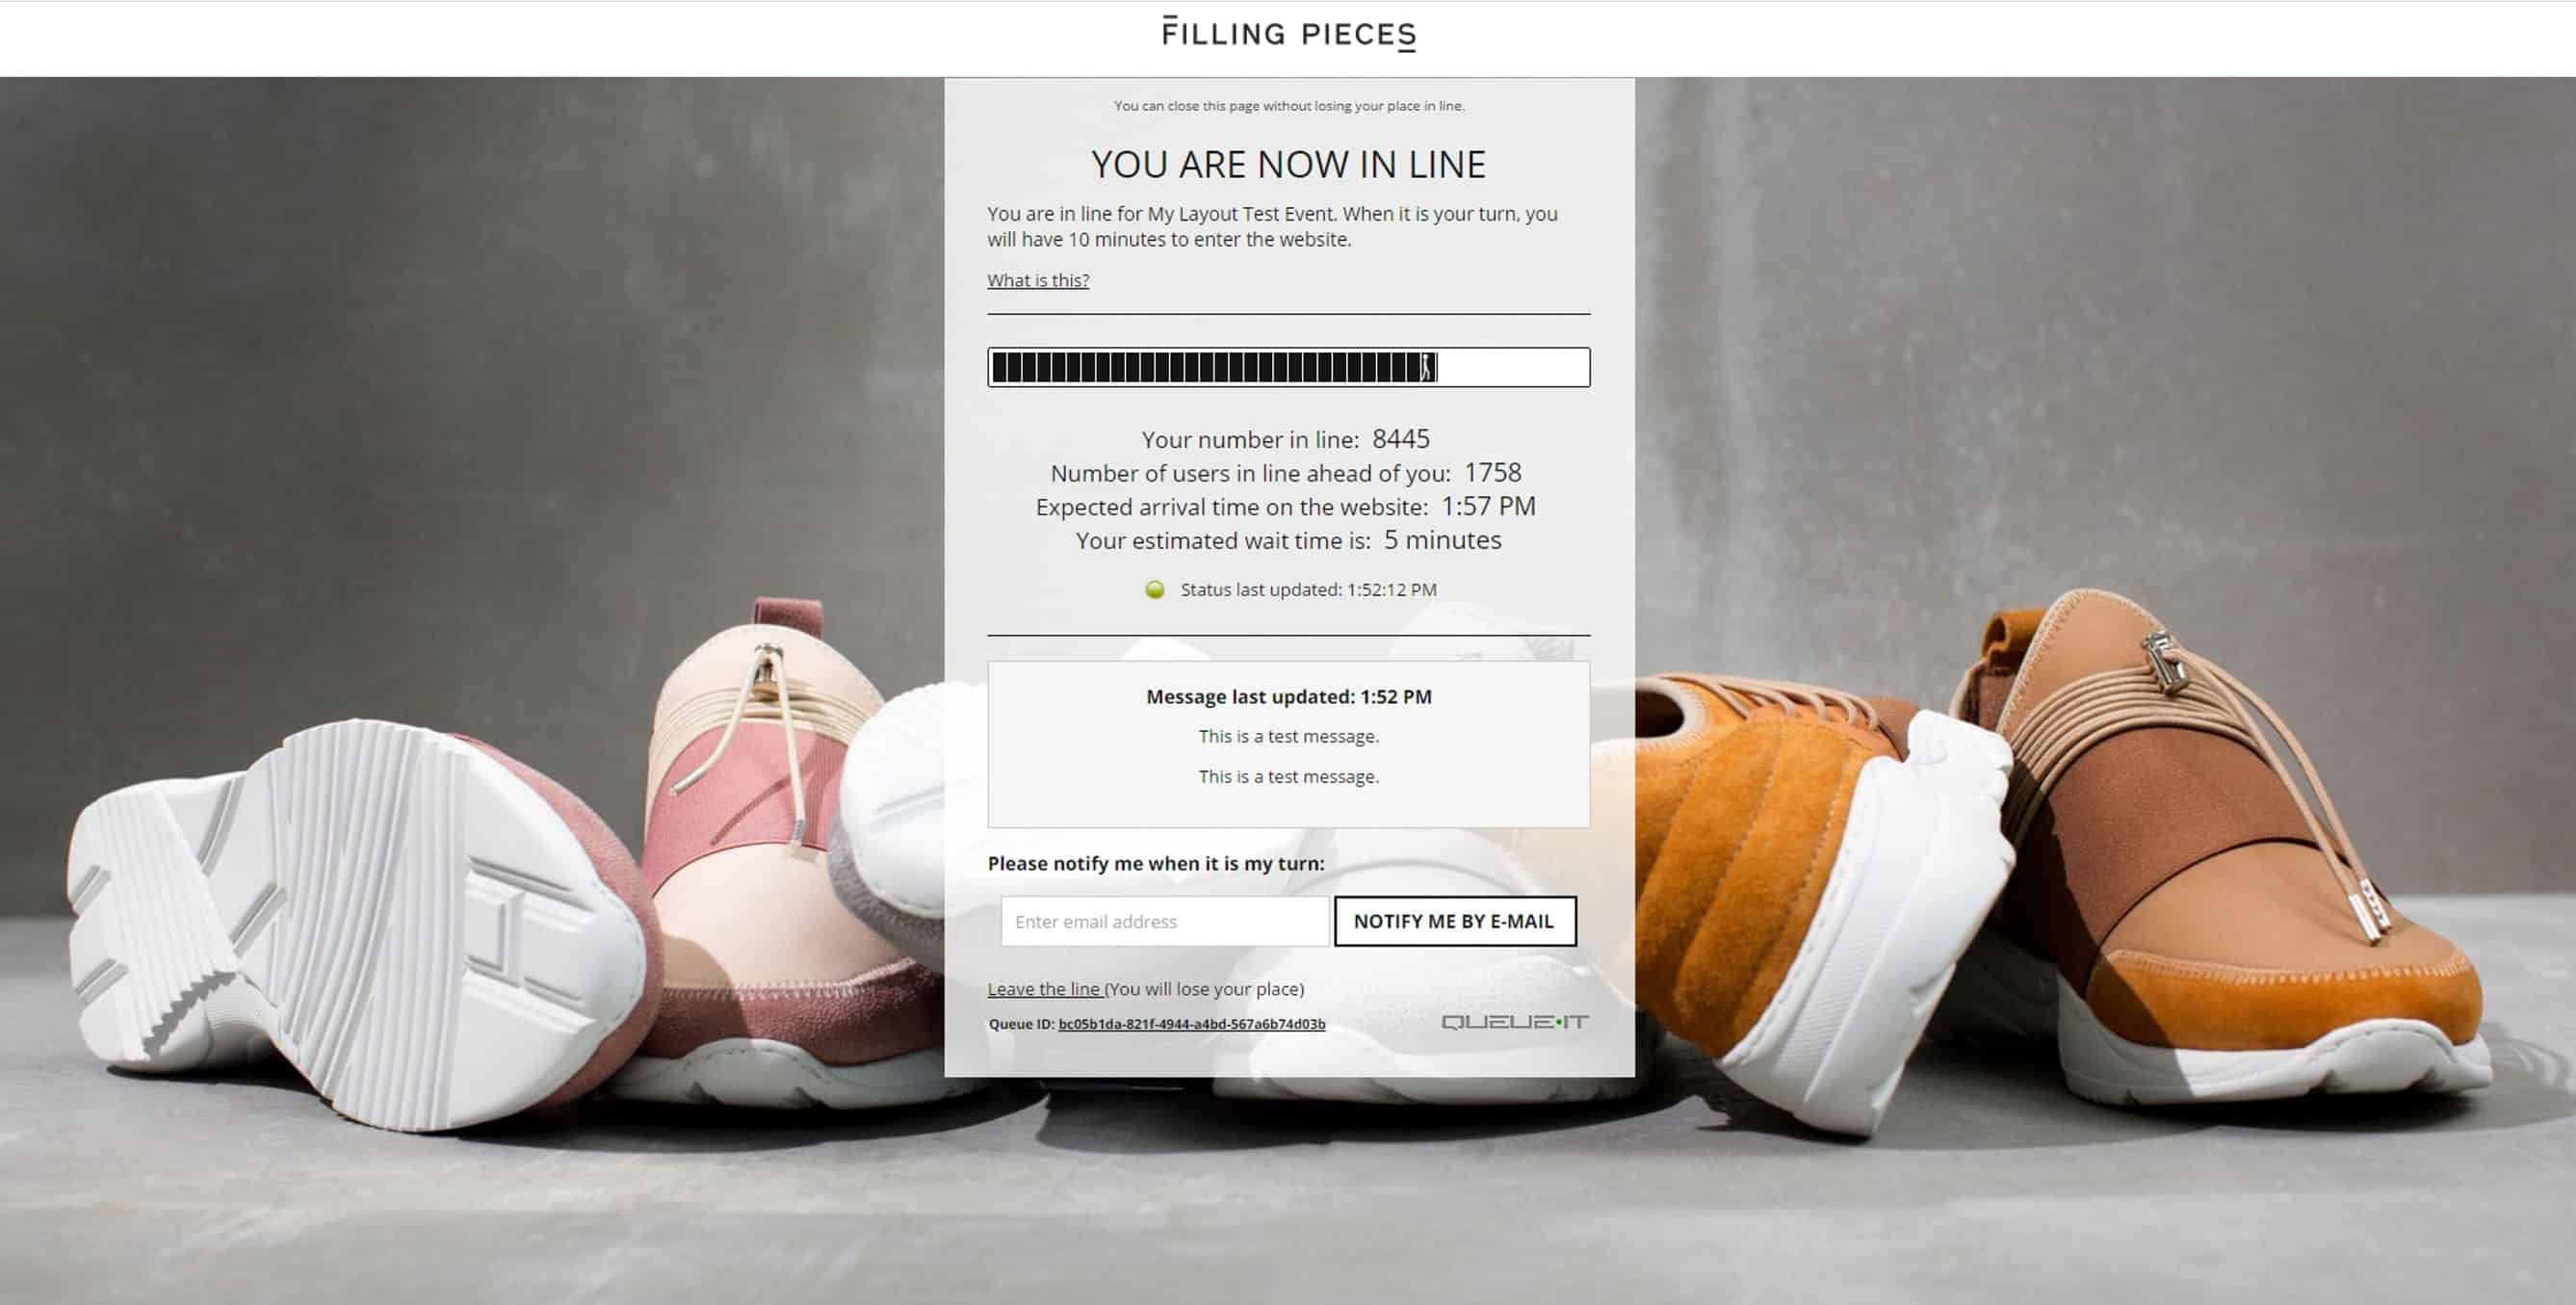 Filling Pieces queue page shows line numbers crucial to activate the bandwagon effect